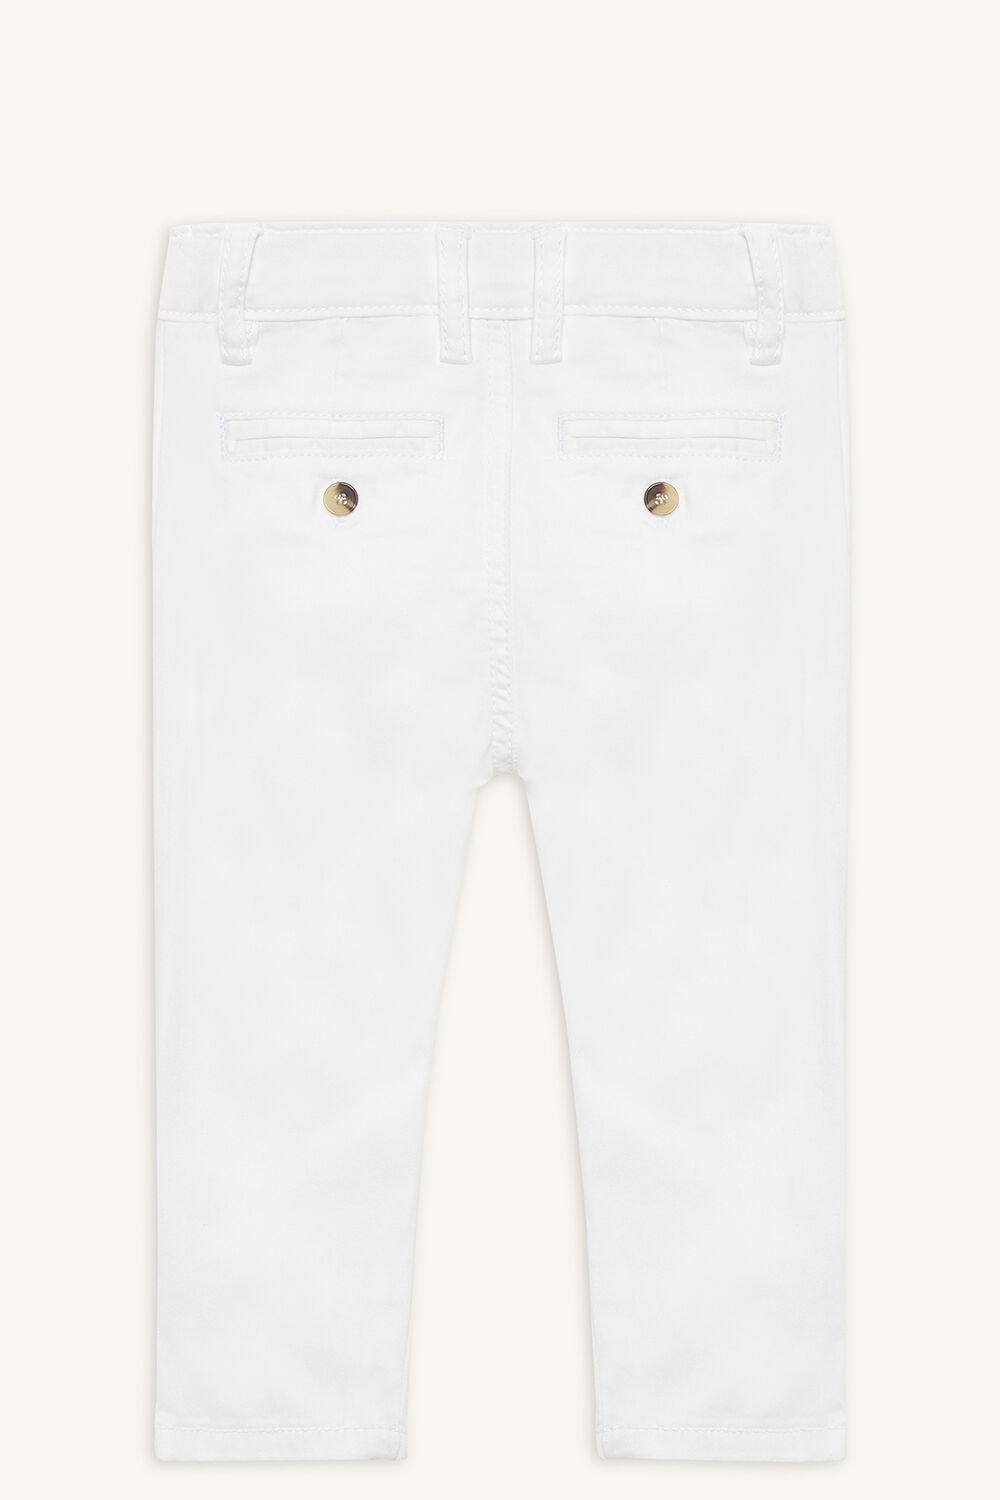 JACK CHINO PANT in colour BRIGHT WHITE